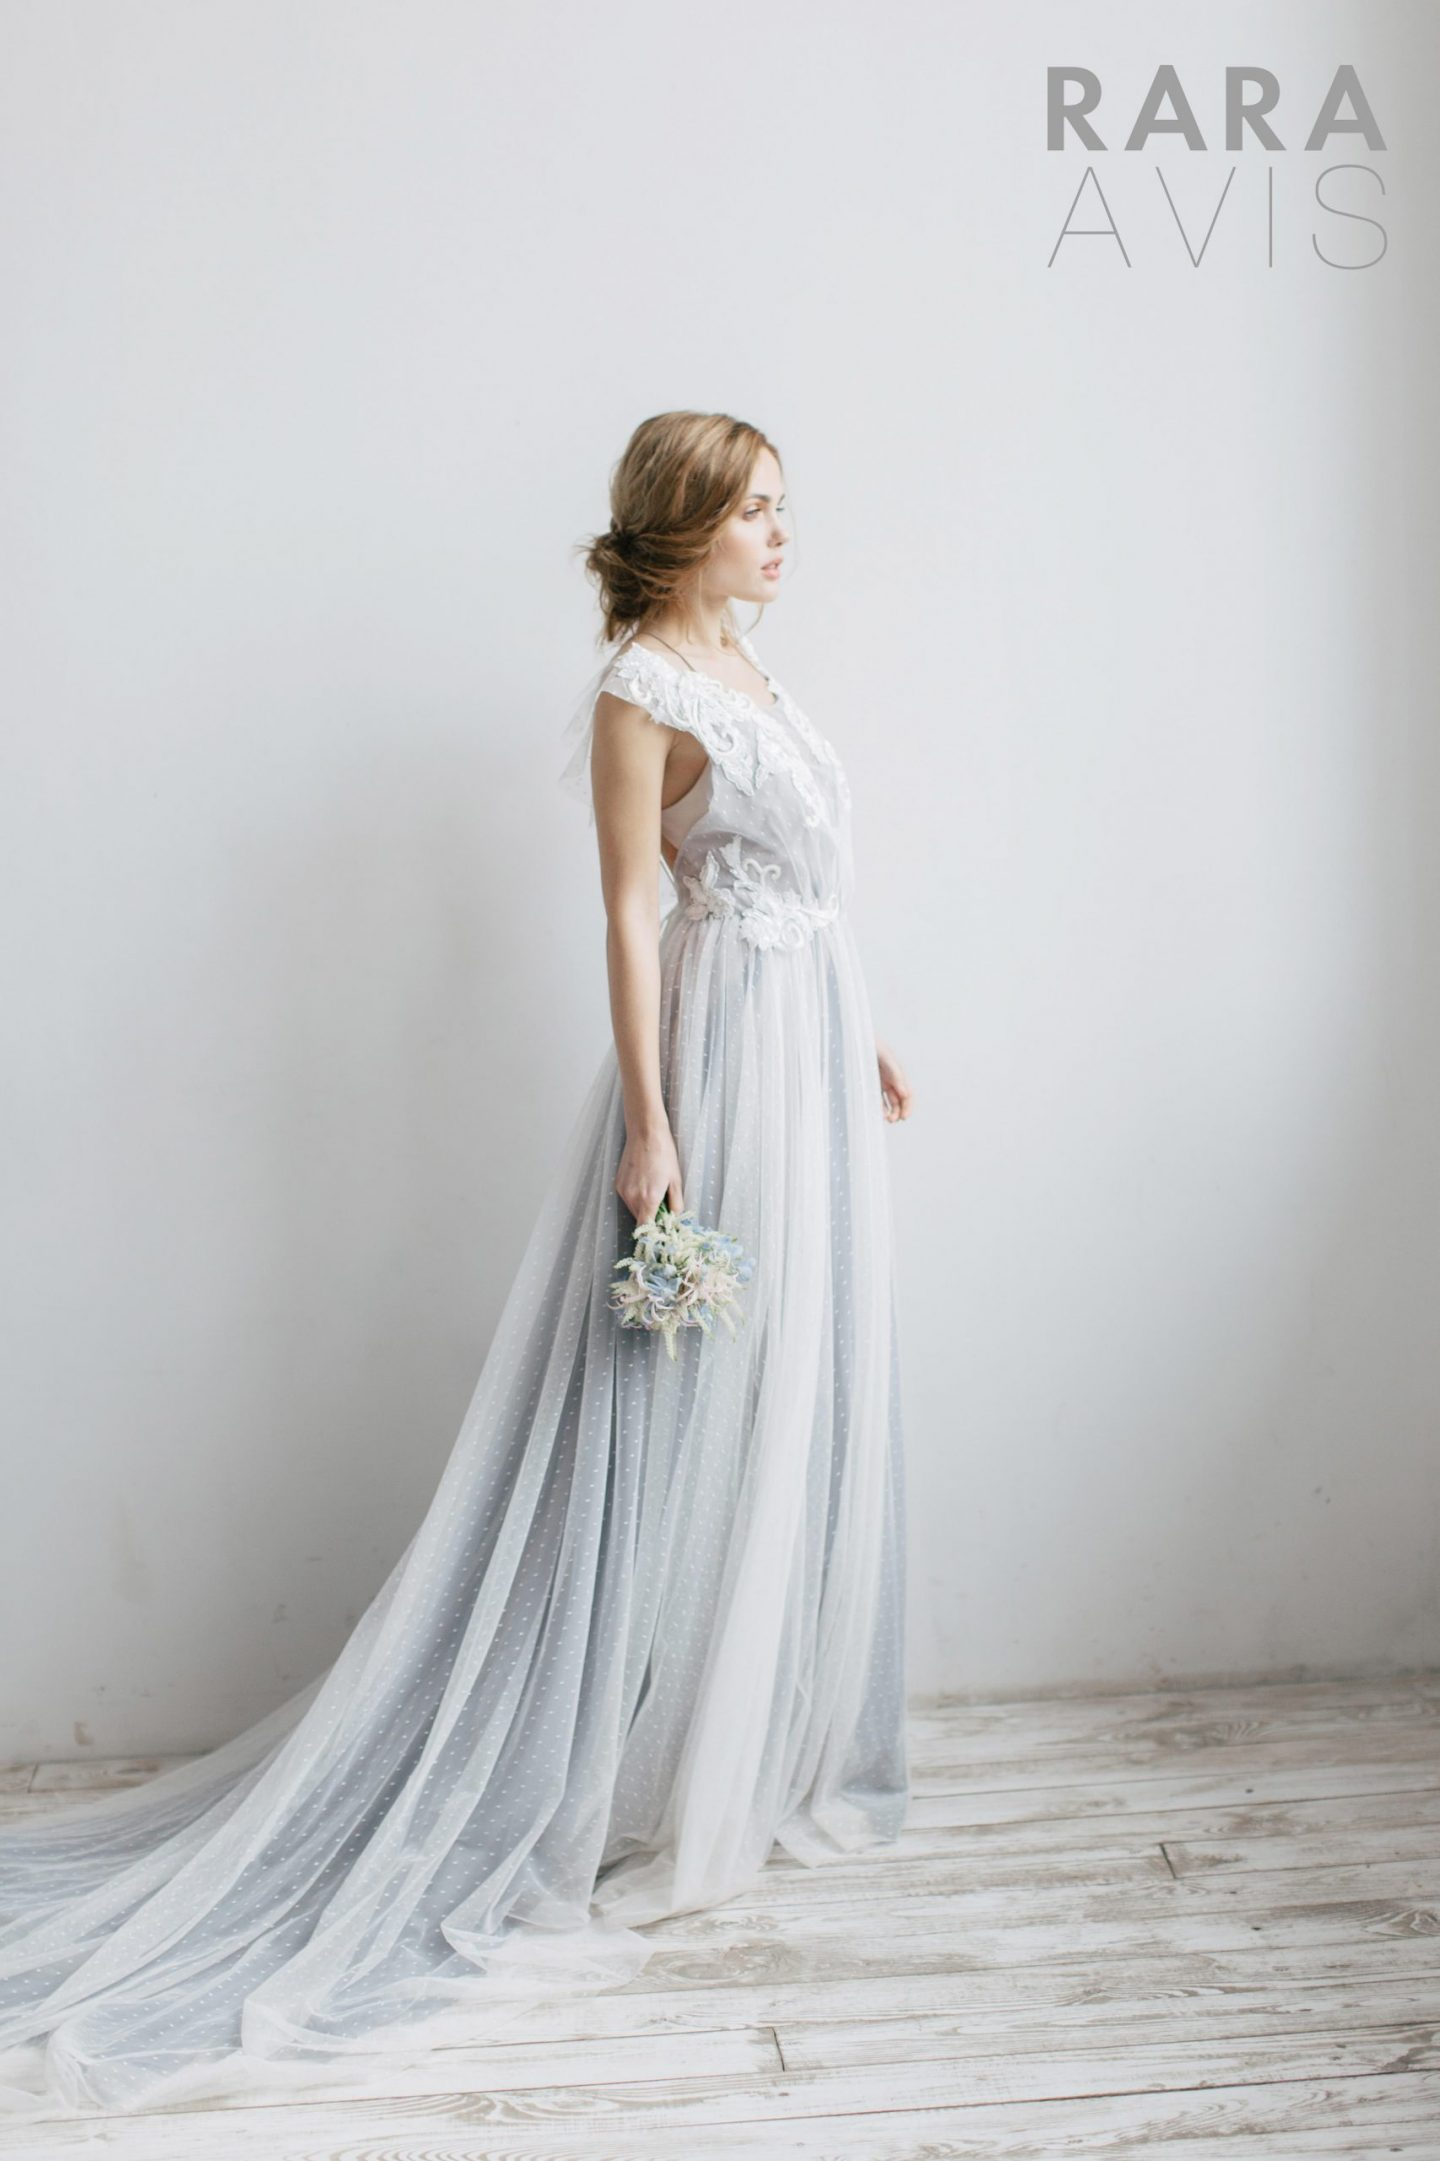 Pale blue romantic wedding dress